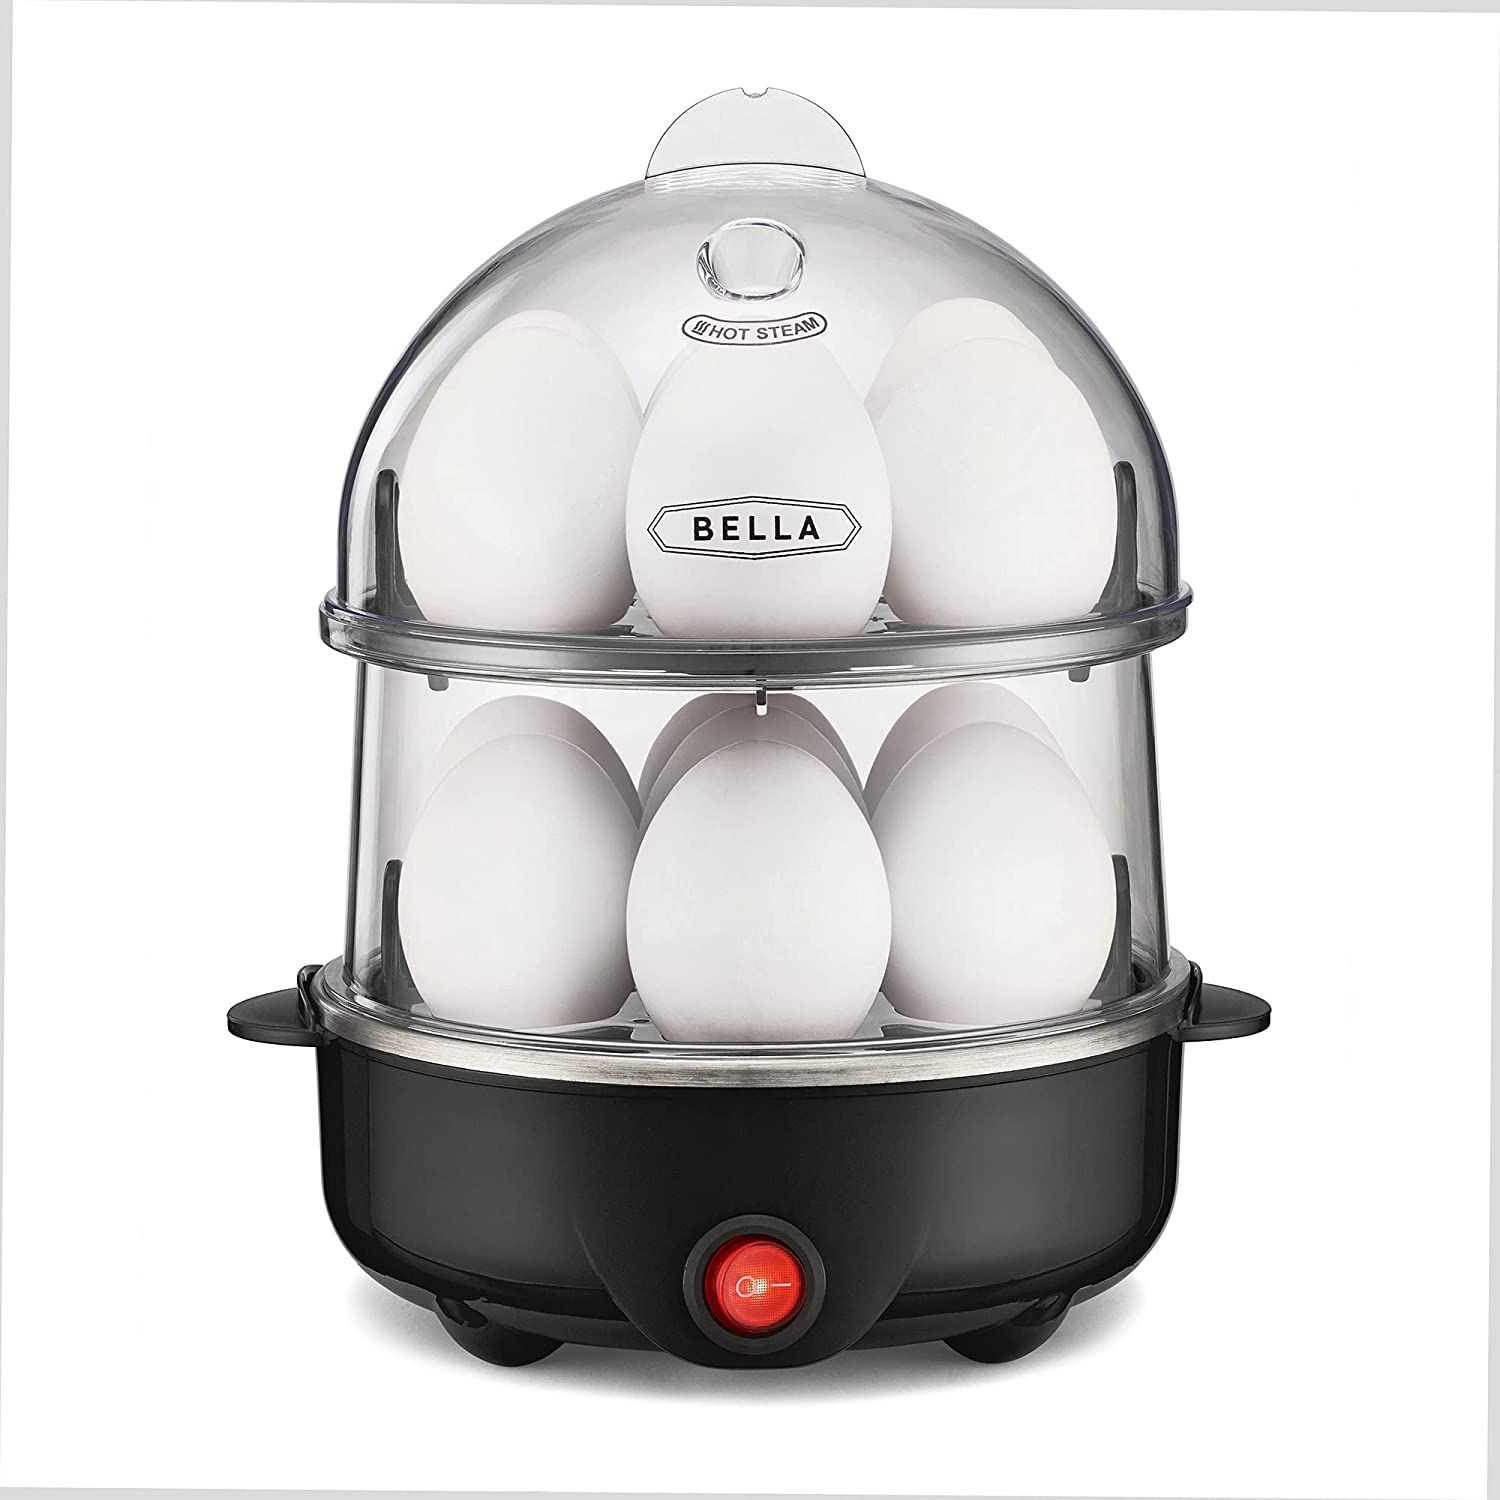 BELLA 17287 Double Cooker, Rapid Boiler, Poacher Maker Make up to 14 Large Boiled Eggs, Poaching and Omelete Tray included, Stack, Black